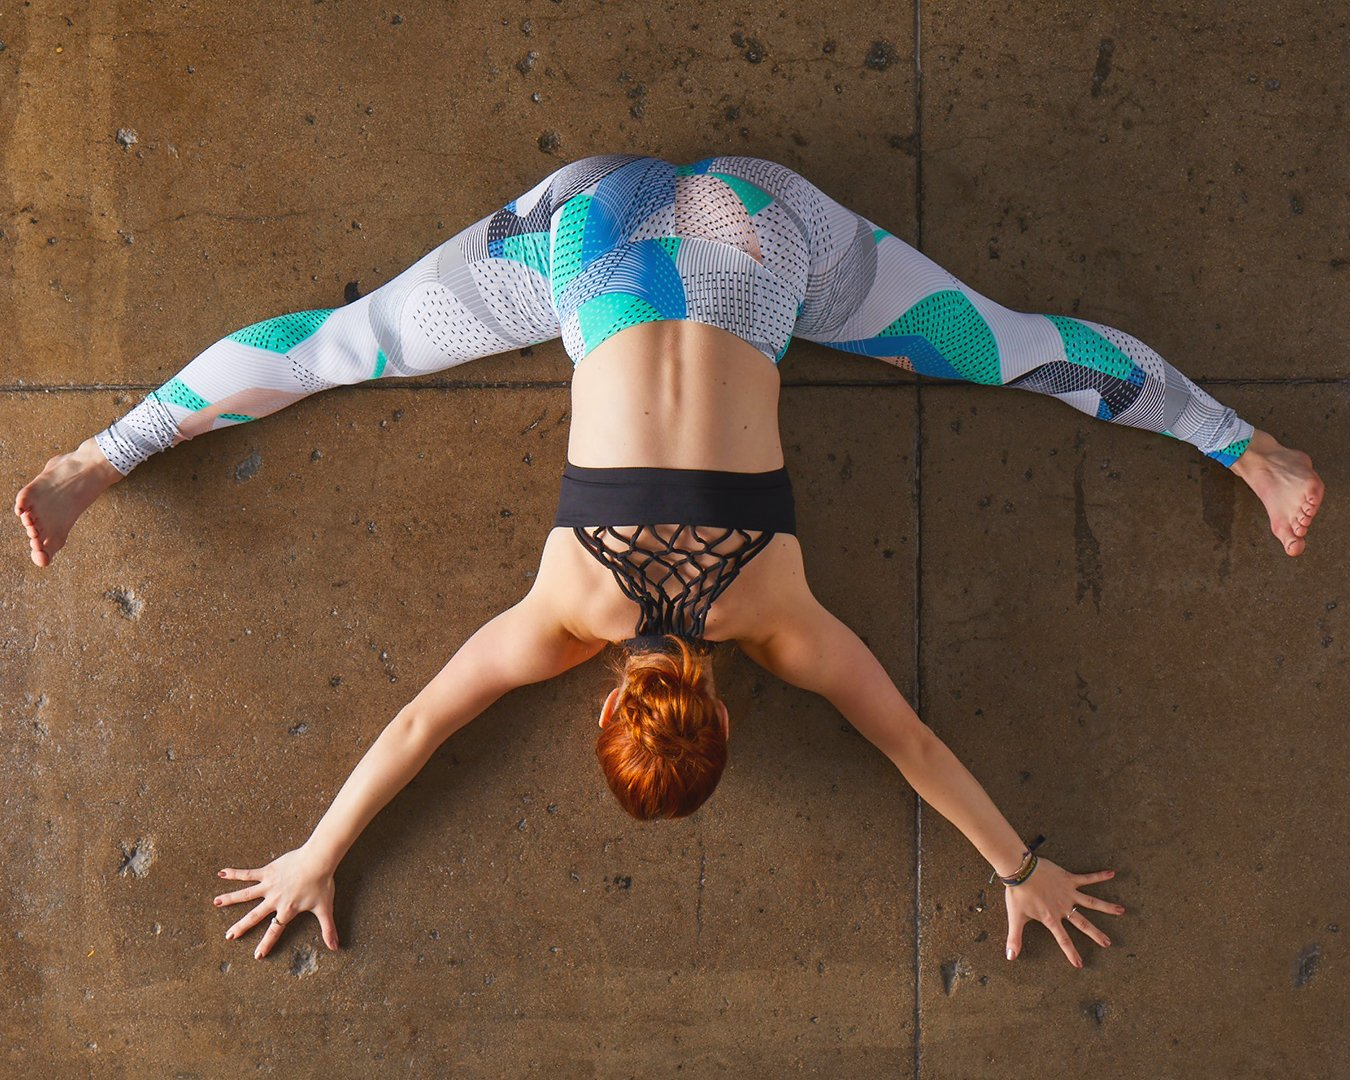 Breathe through it and release anything that does not serve you. #liveyourpower #yoga https://t.co/bhiKDGdOUy